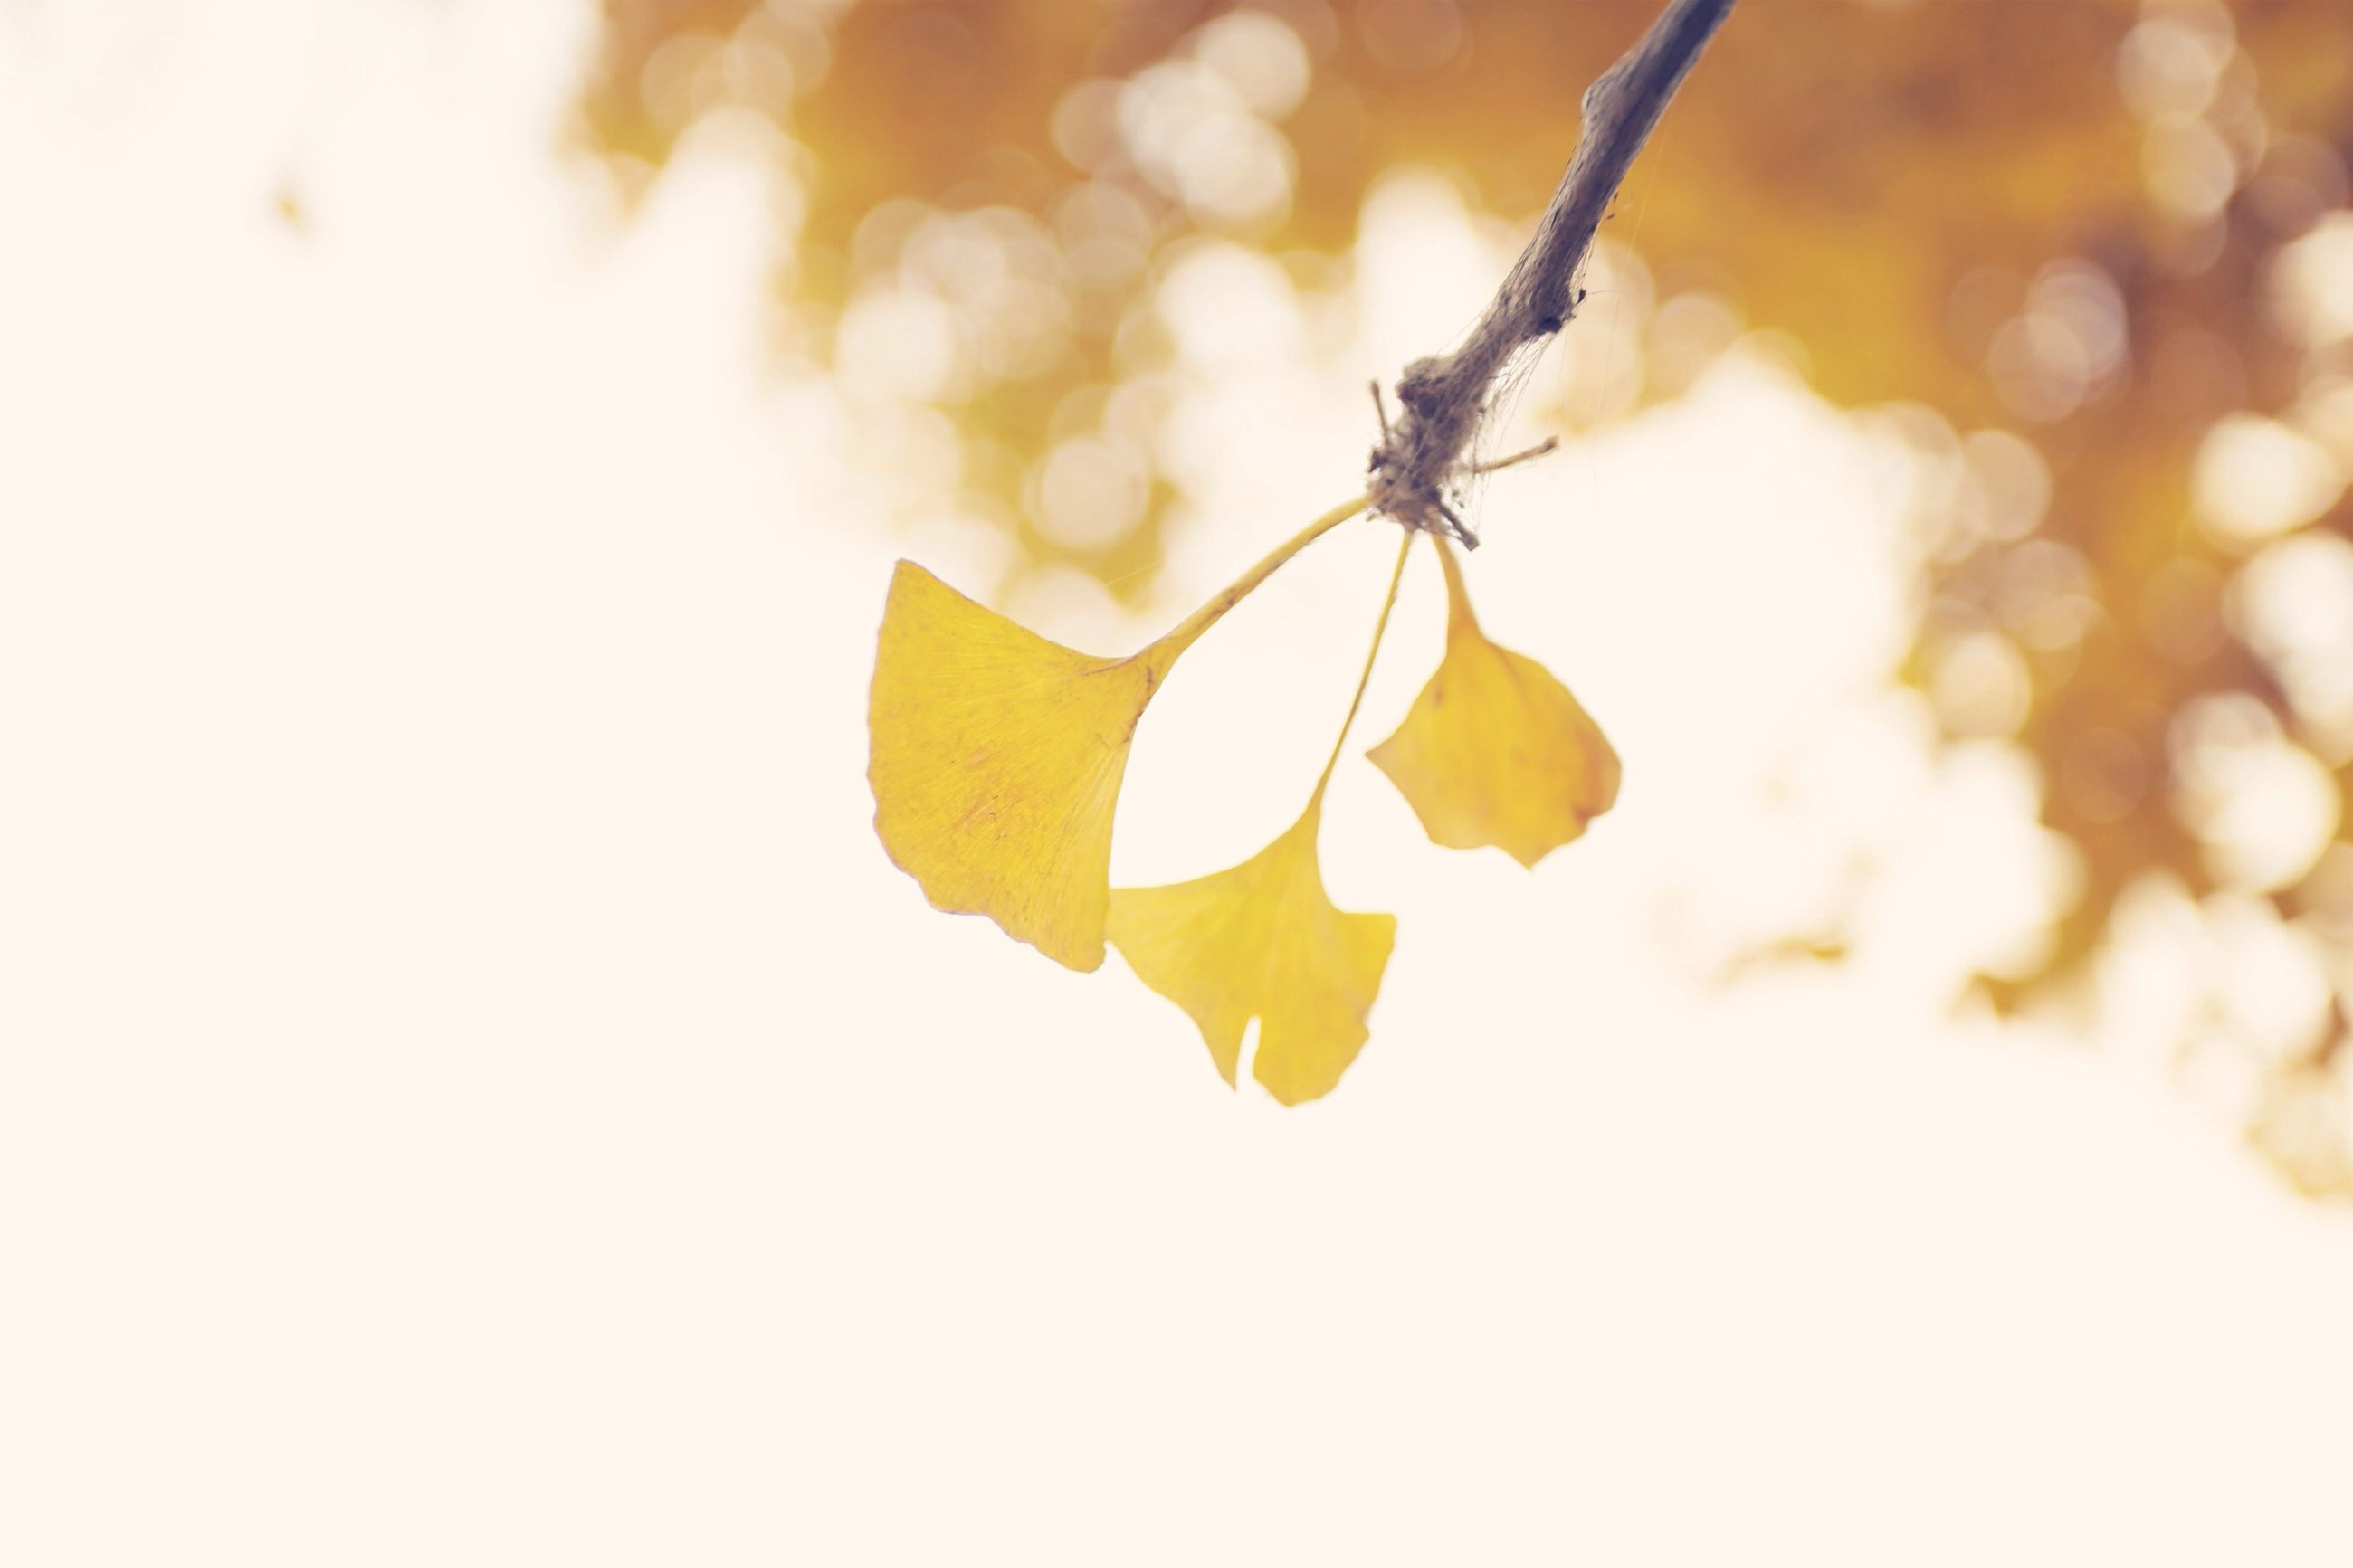 yellow, close-up, leaf, focus on foreground, growth, nature, fragility, flower, stem, selective focus, autumn, branch, low angle view, twig, plant, beauty in nature, season, freshness, no people, outdoors